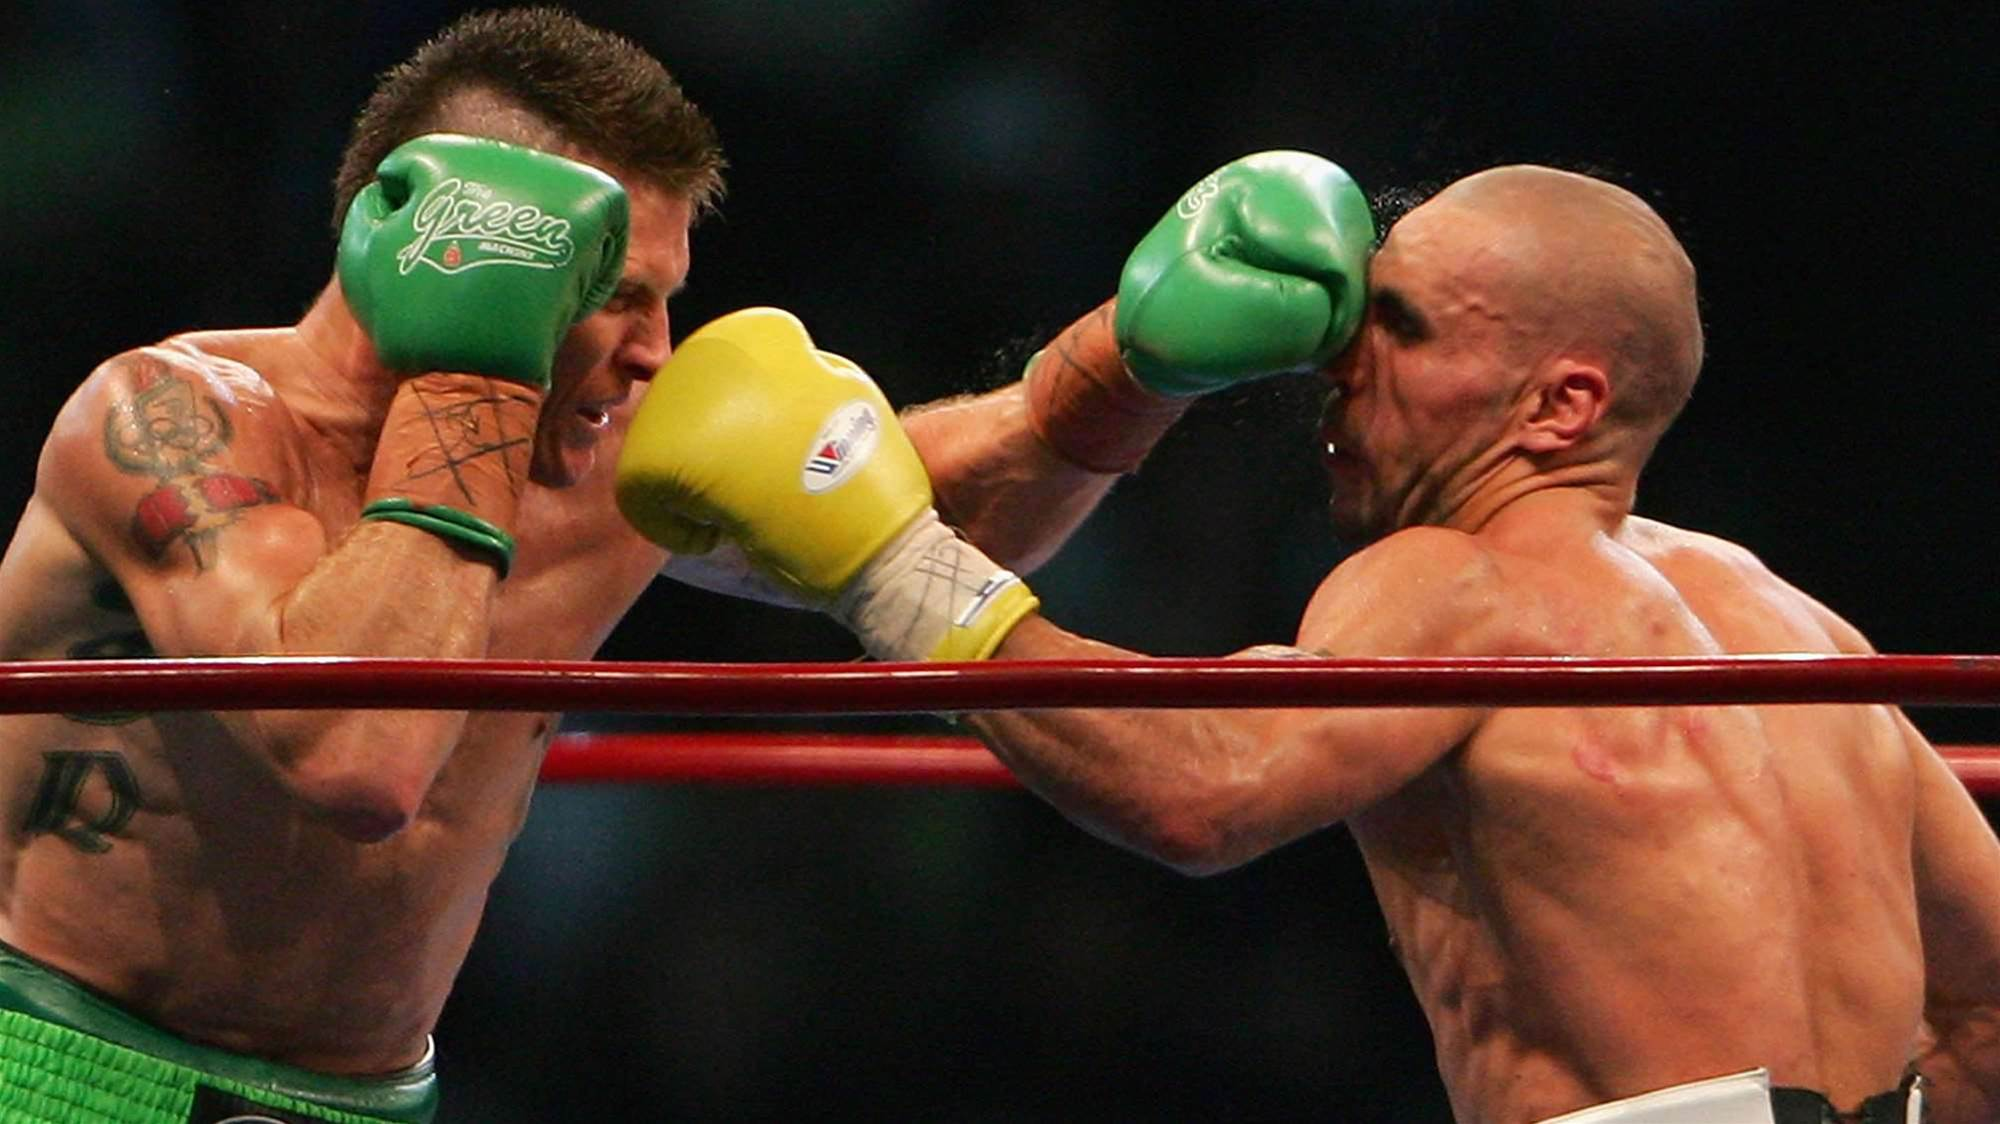 Fenech to Mundine: Don't fight